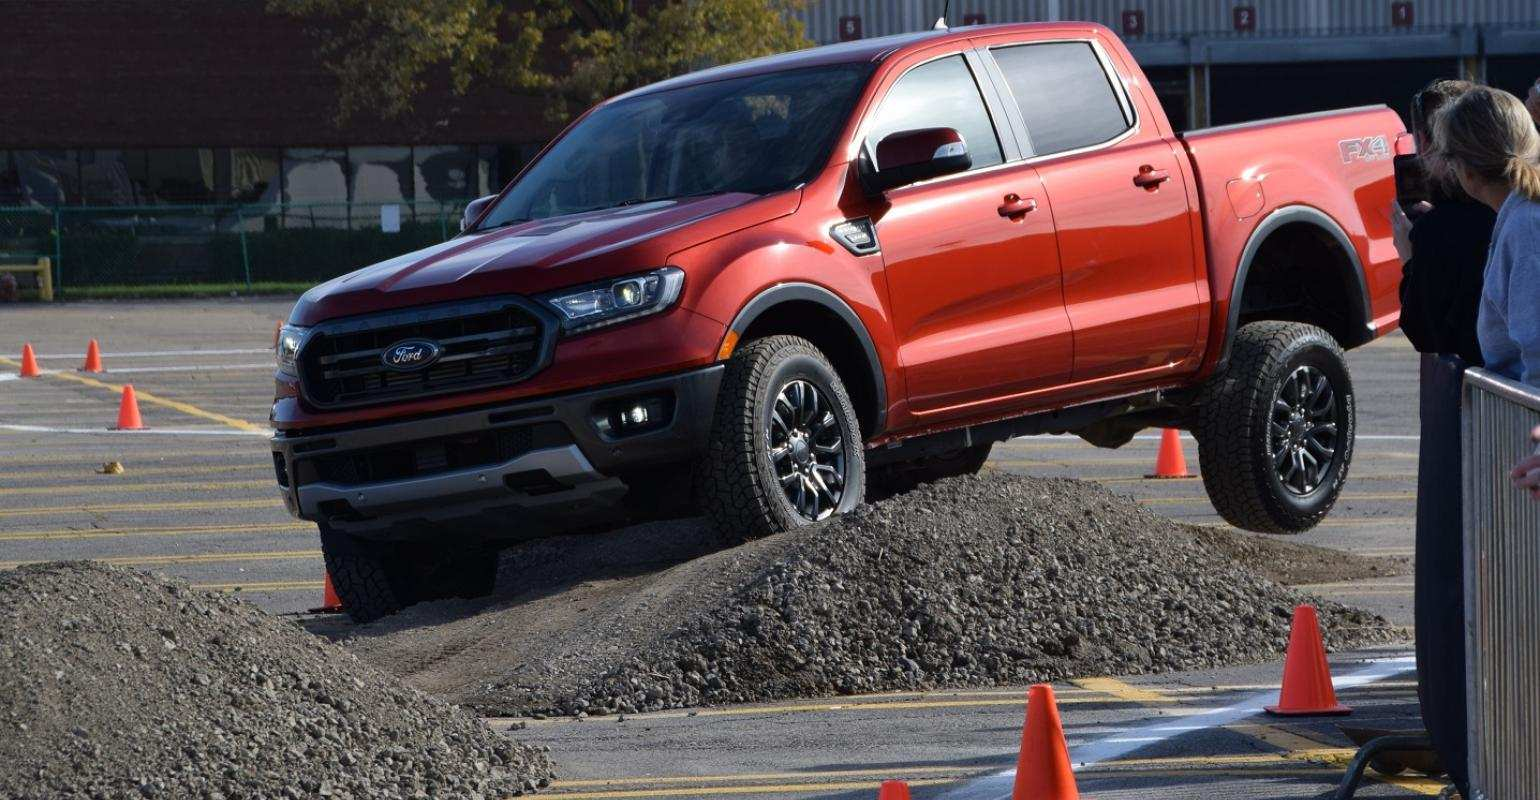 61 All New 2019 Ford Ranger Images Images for 2019 Ford Ranger Images